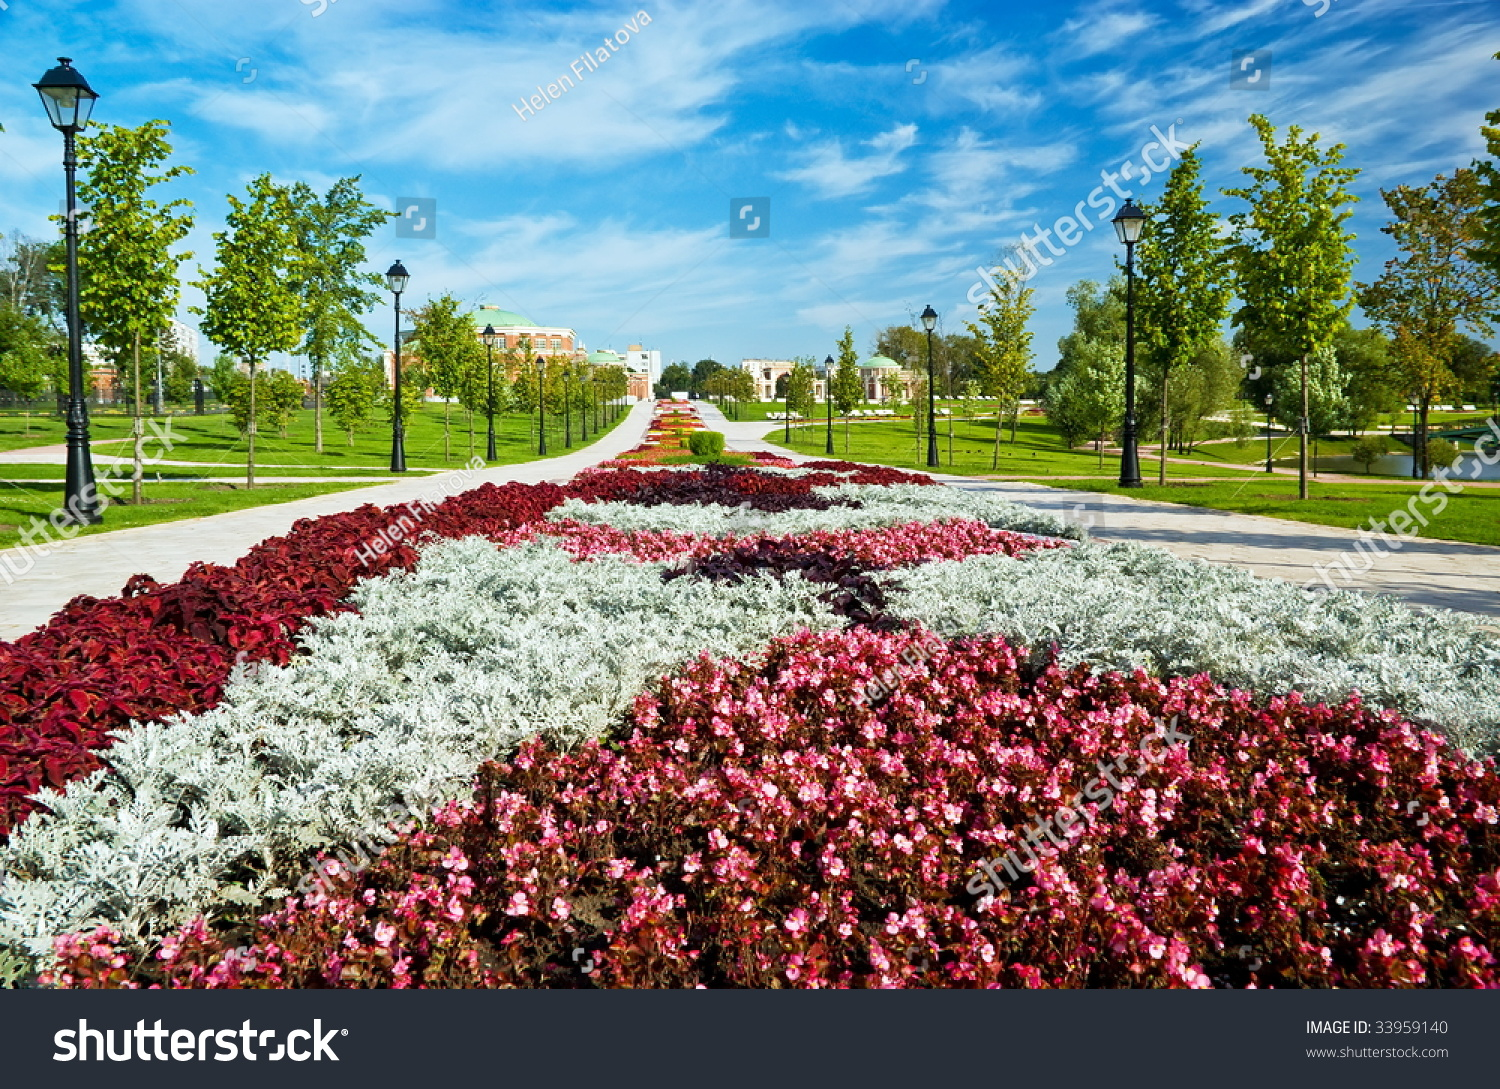 Beautiful flower bed formal garden moscow stock photo edit now a beautiful flower bed in a formal garden moscow the state museum reserve park izmirmasajfo